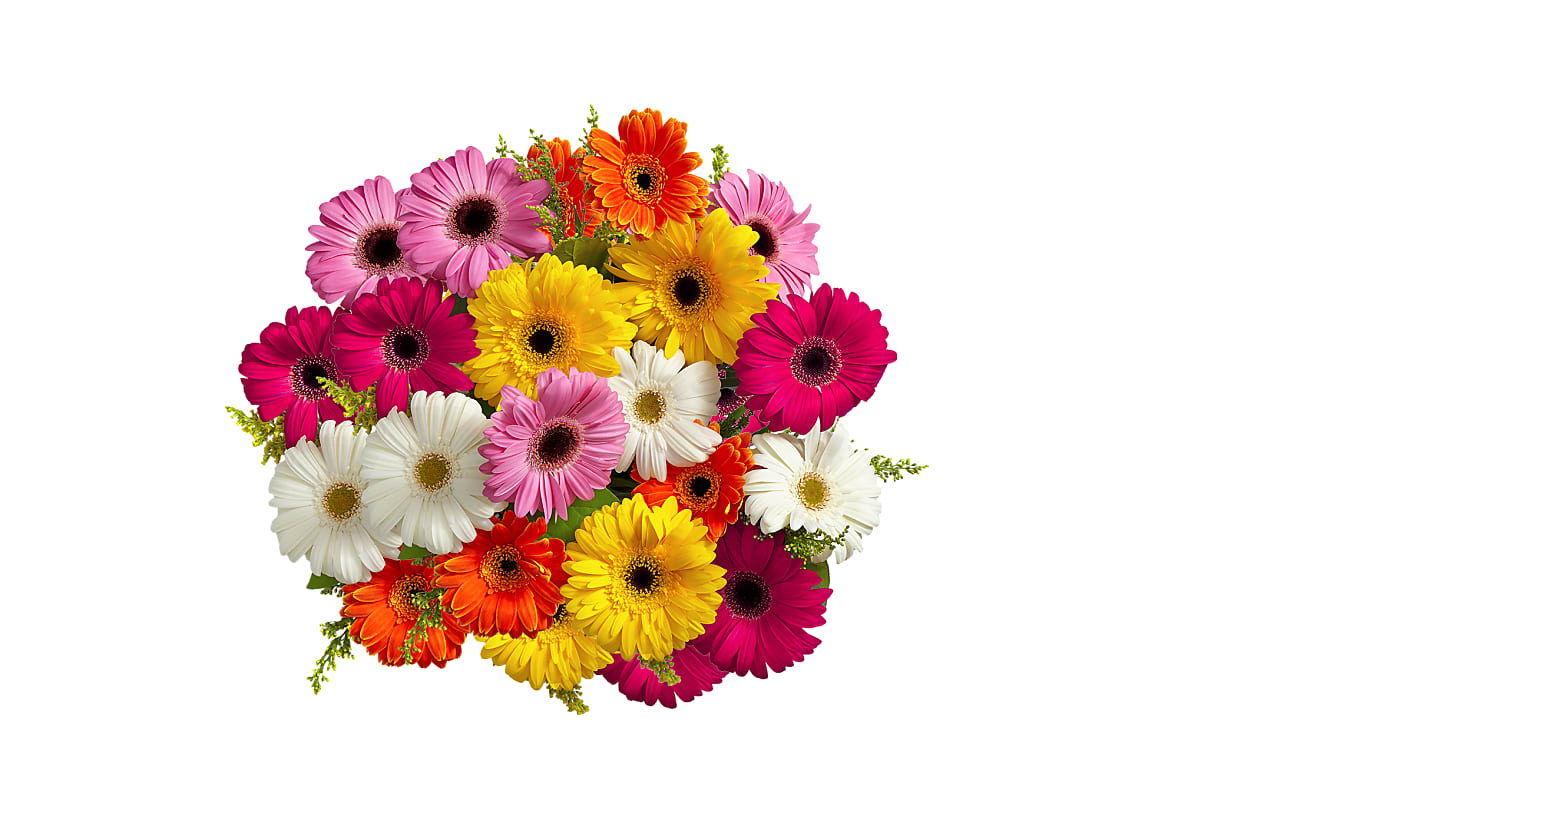 Colorful Gerbera Daisies - Image 2 Of 4